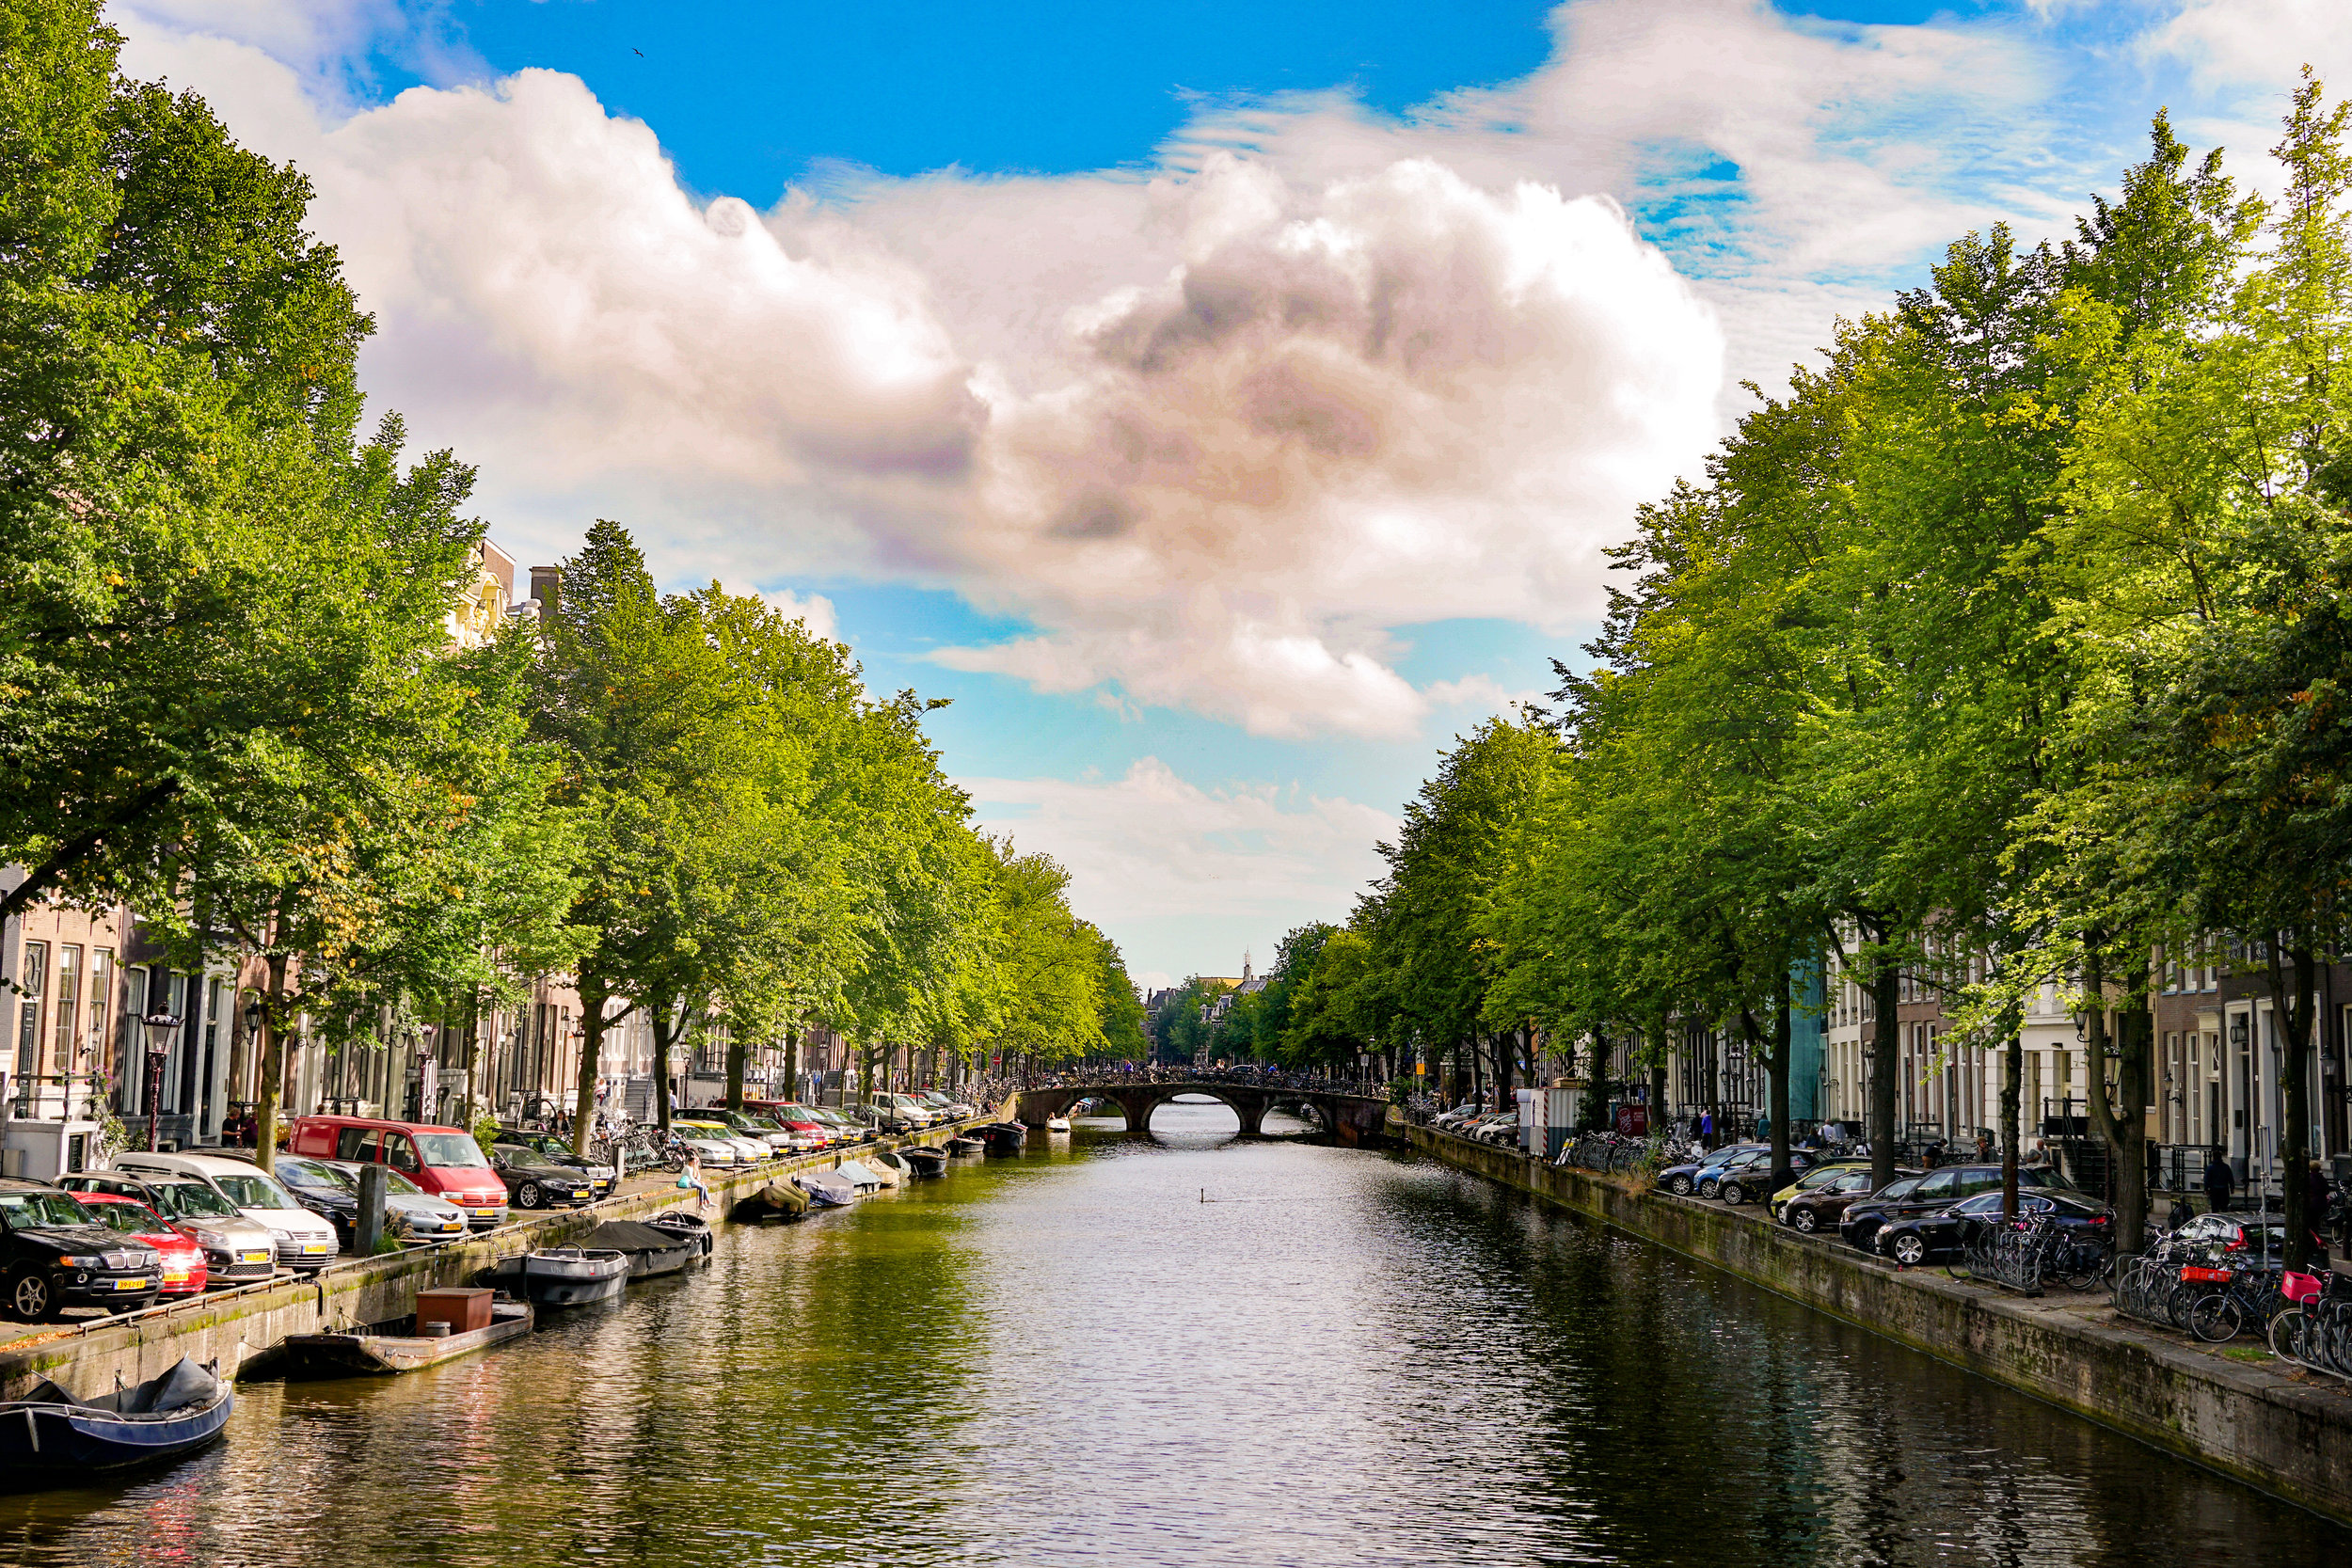 7. Amsterdam canals